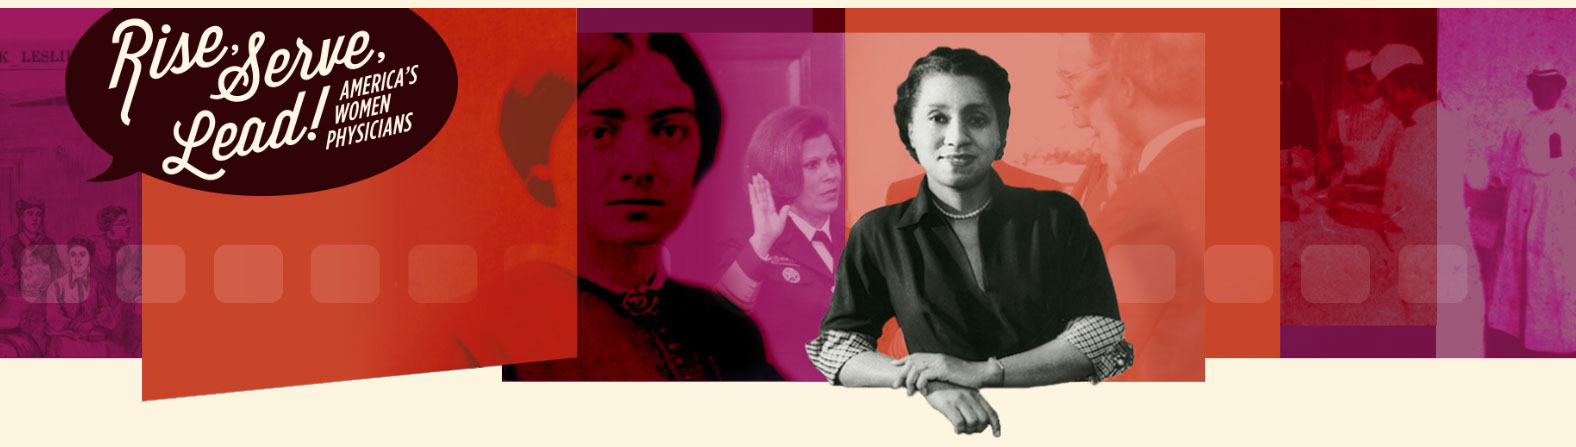 A promotional image for the National Library of Medicine's Rise Serve Lead program about female physicians includes photos of female scientists with the project title overlaid.